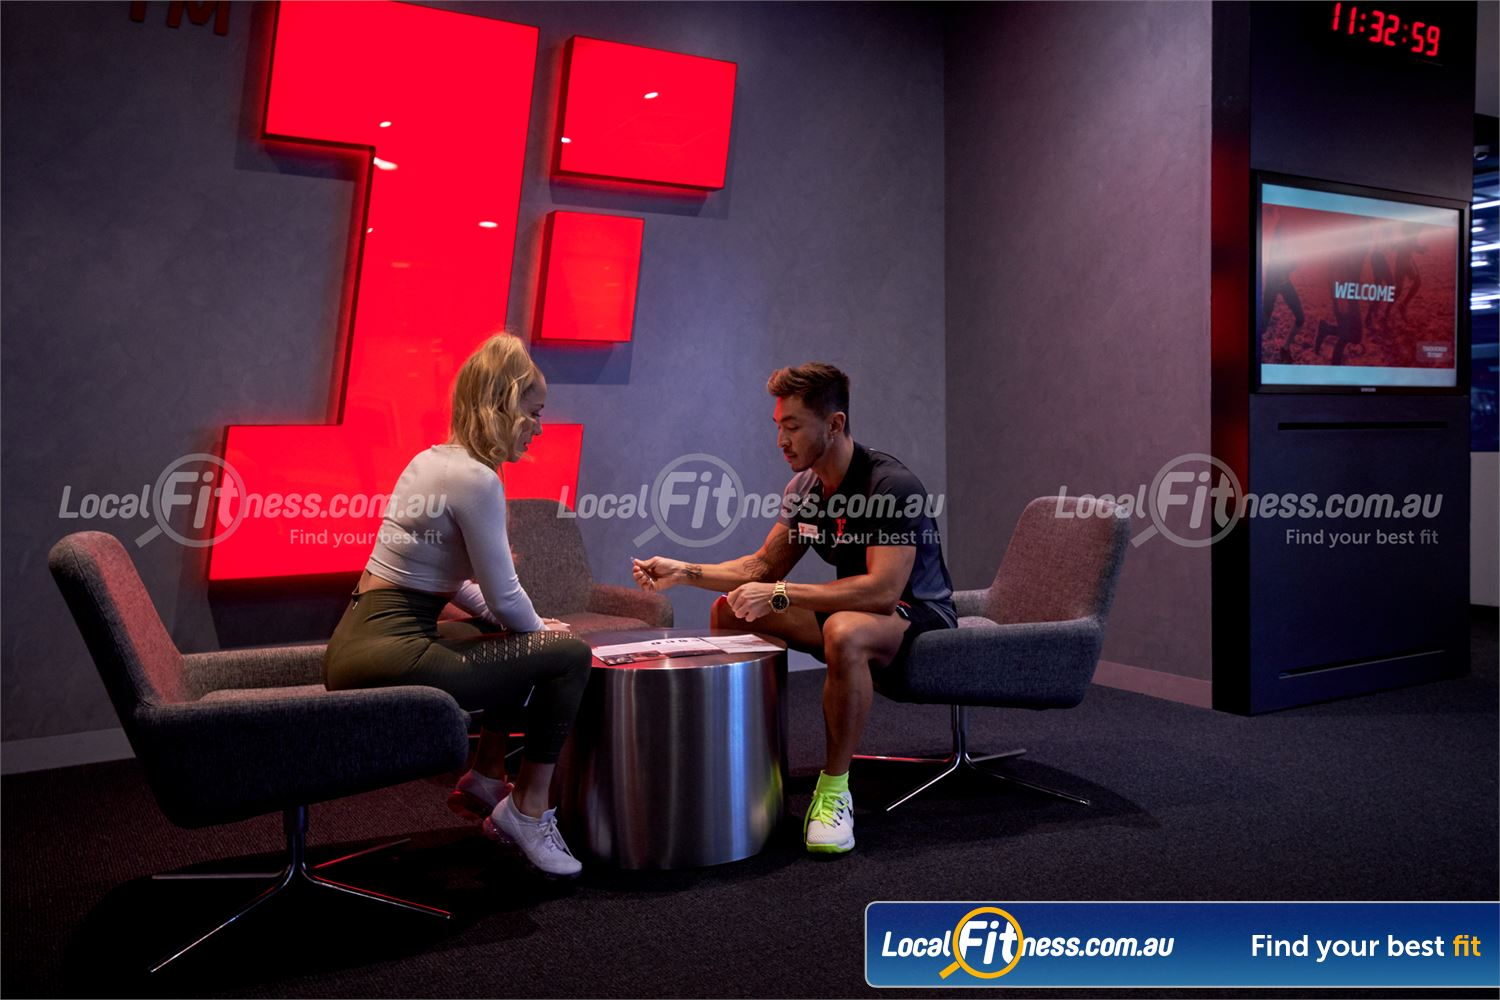 Fitness First Macquarie Ryde Exclusive members lounge with technology bar and FREE WiFI.